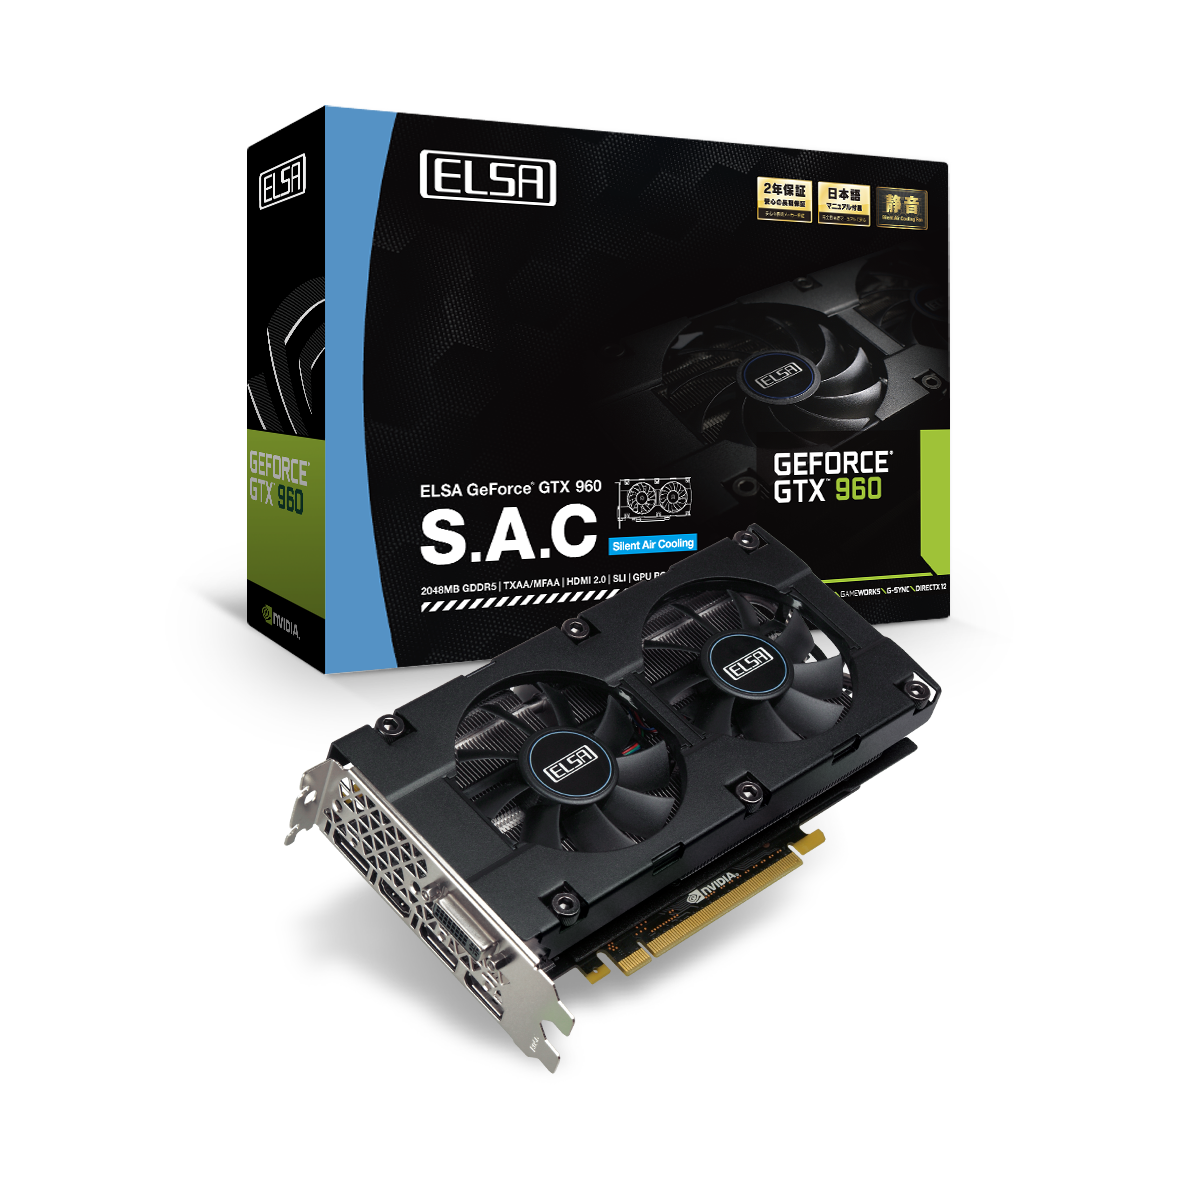 elsa_geforce_gtx_960_2gb_sac_box_card